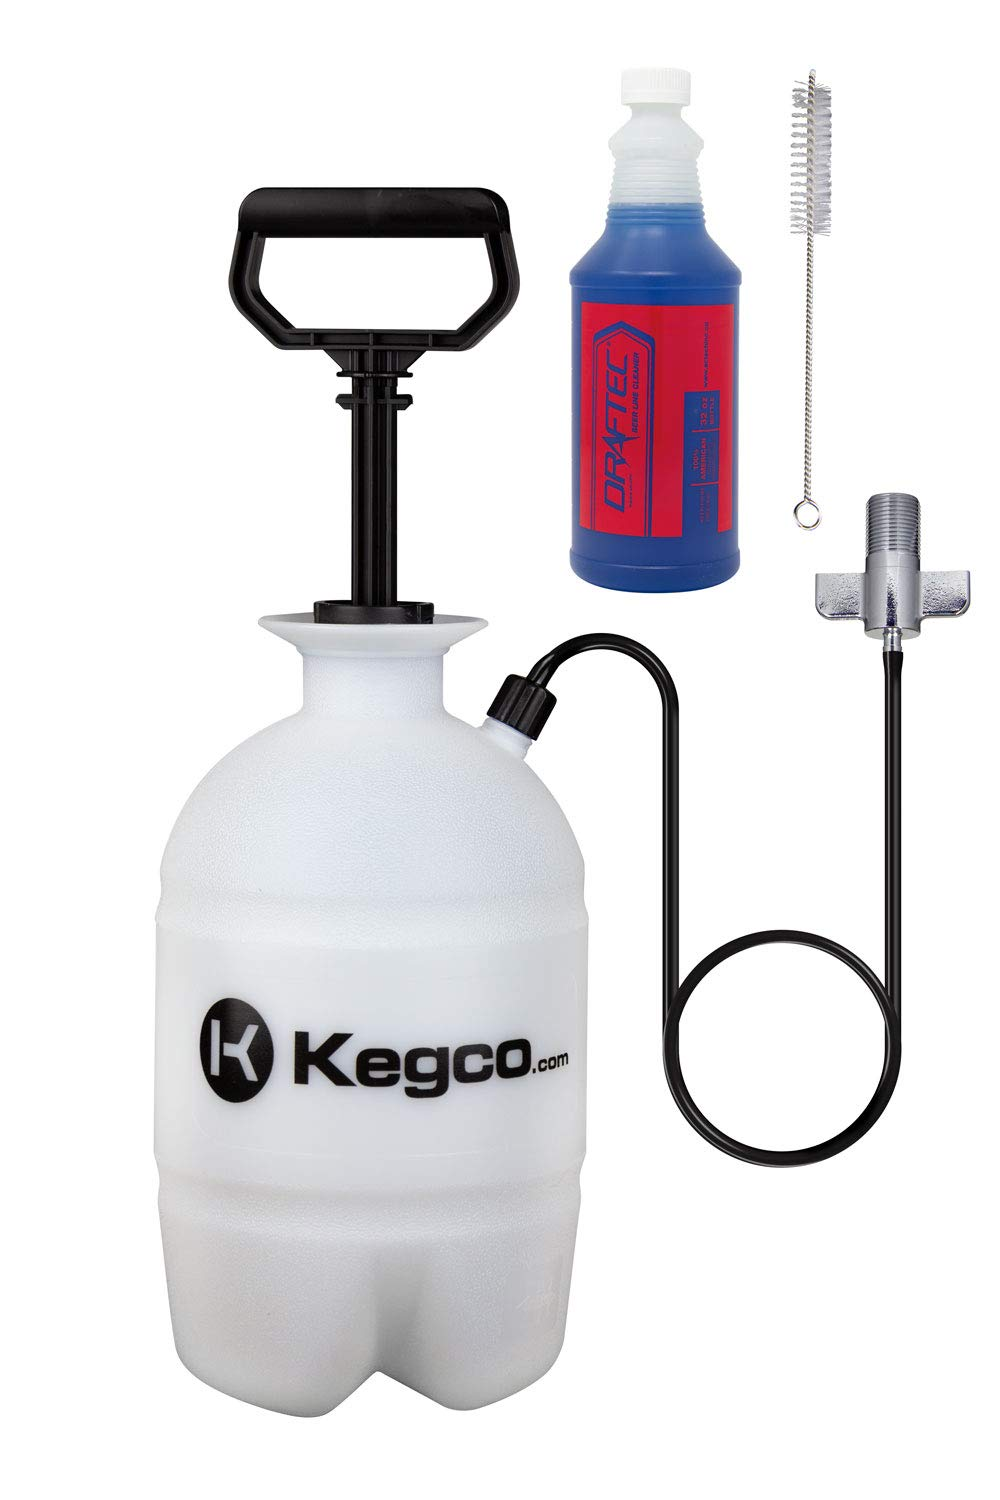 Draftec DTPCK Deluxe Beer Line Cleaning Kit Hand Pump Pressurized Keg with 32 oz. Cleaner by Draftec